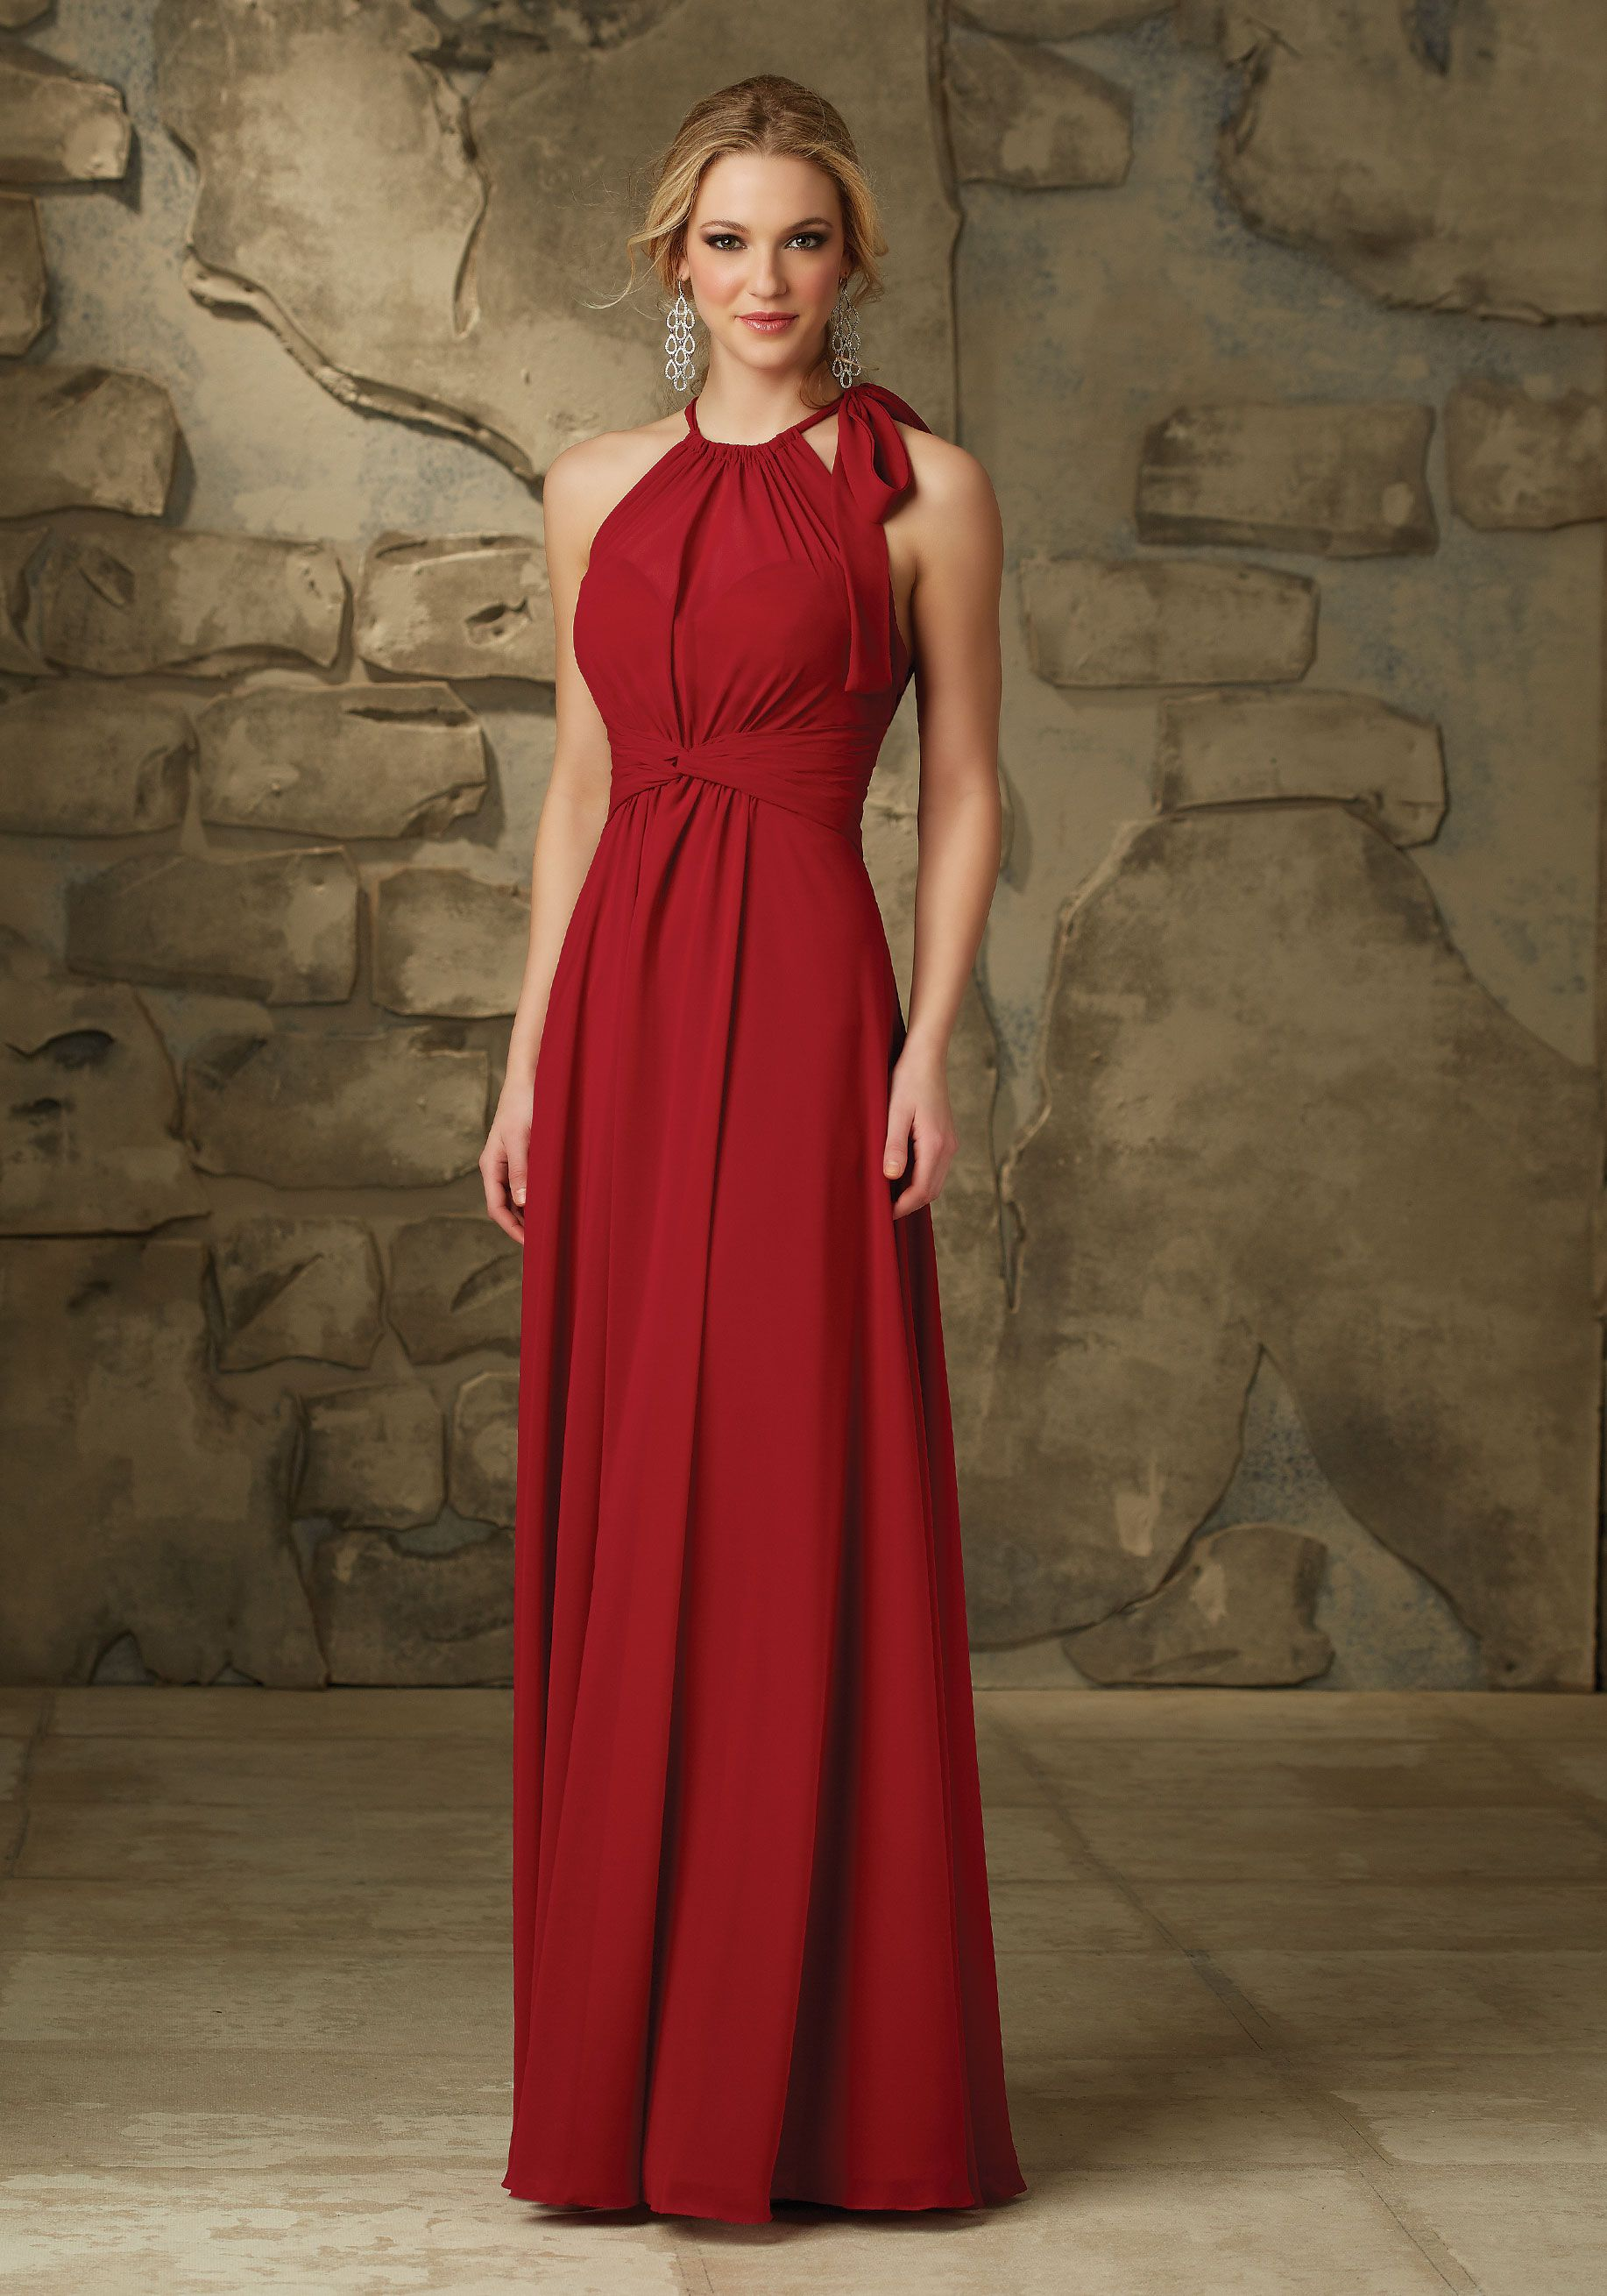 d7866b1da0a8 Luxe Chiffon Bridesmaid Dress with Open Slit in the Back Designed by  Madeline Gardner. Colors available: all Luxe Chiffon Colors